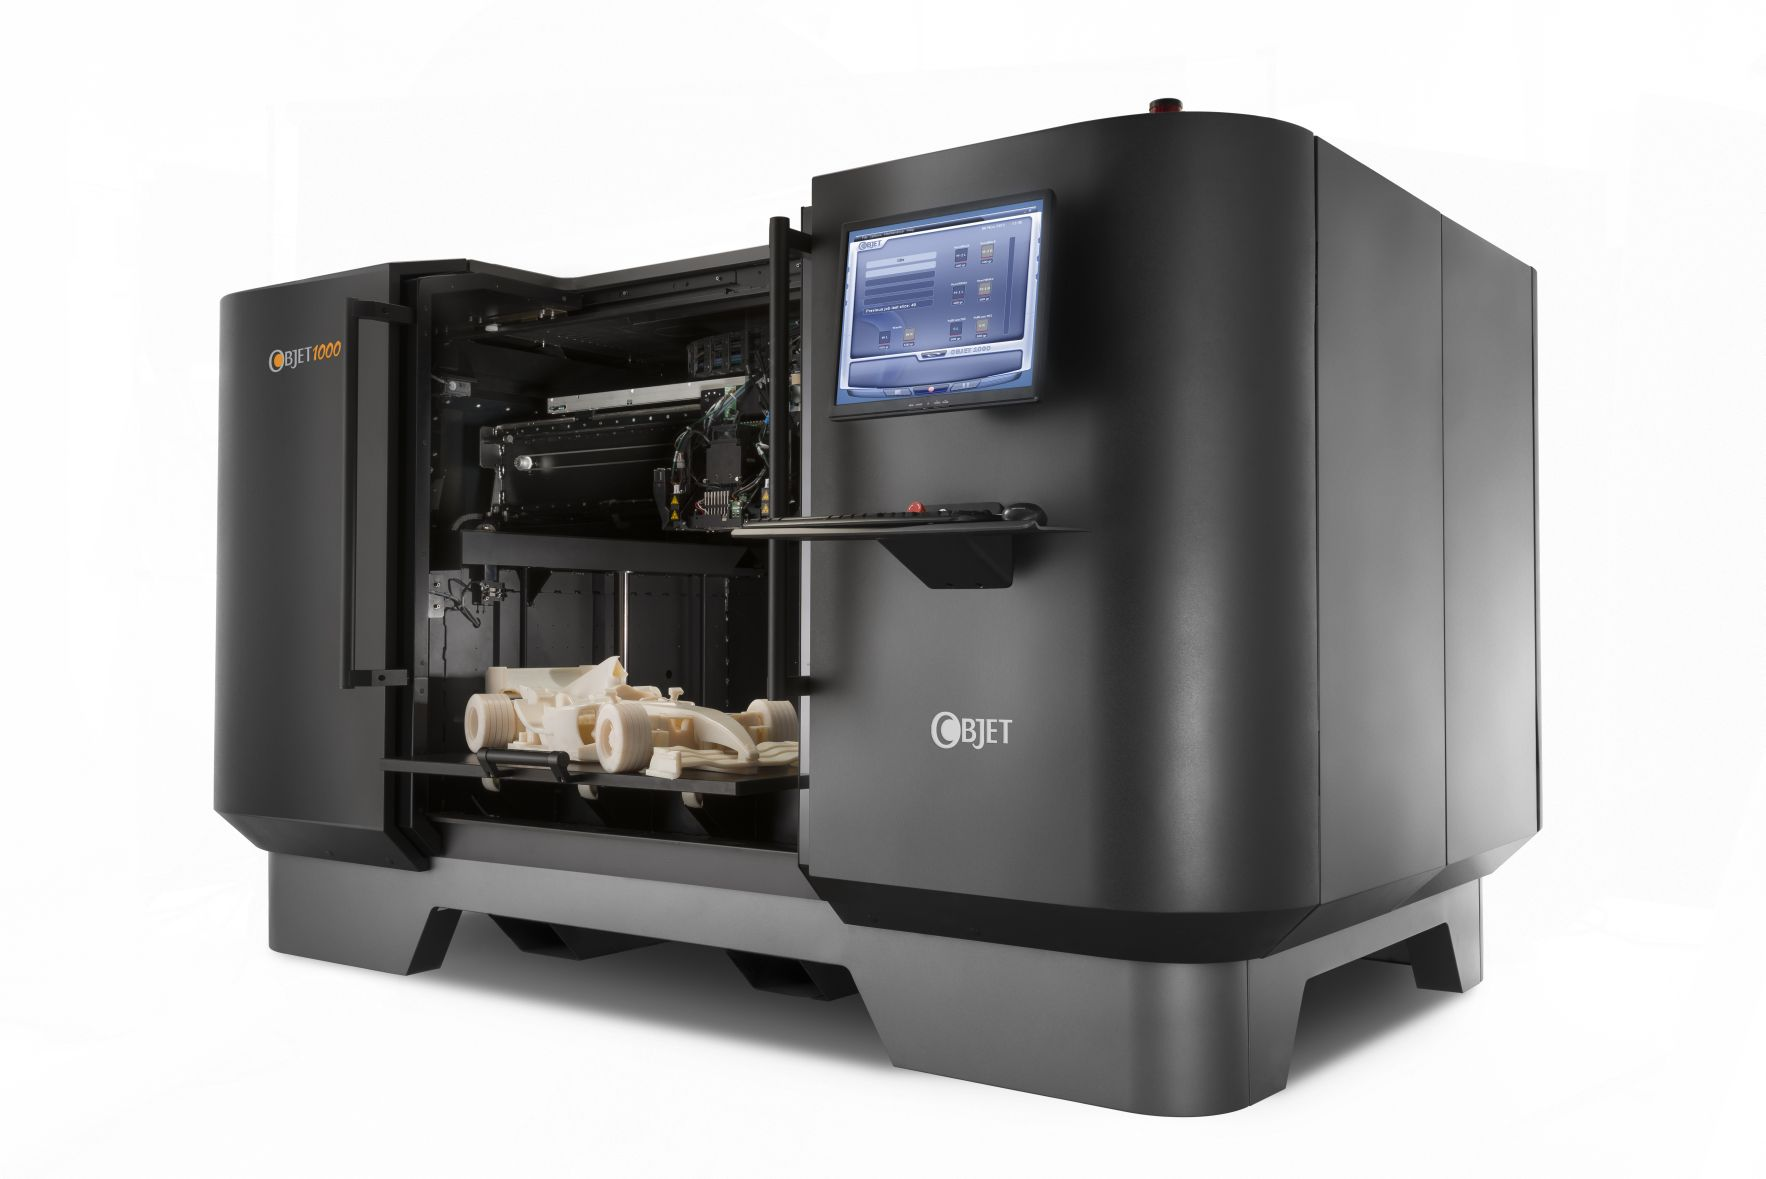 3D Printing: Employment Boom or Employment Swoon? - 3DPrint.